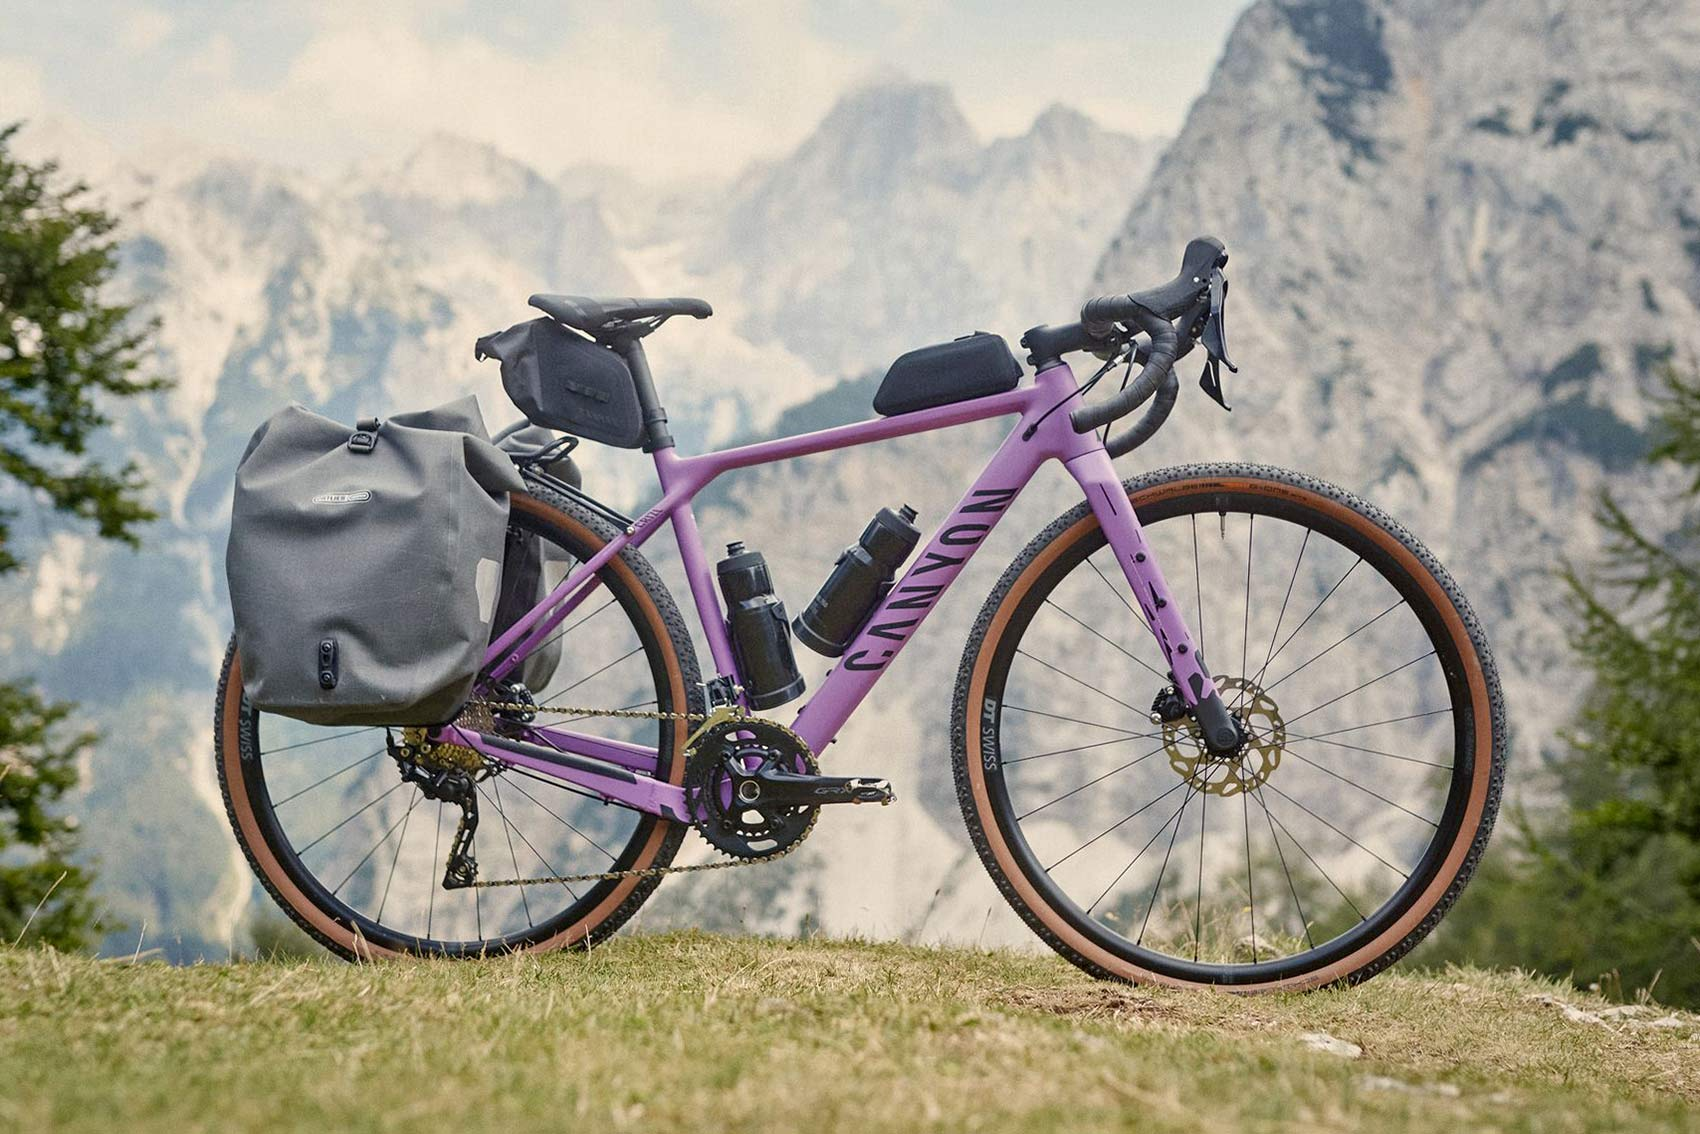 Canyon Grizl AL affordable alloy adventure gravel bike, photo by Marco Freudenreich, complete